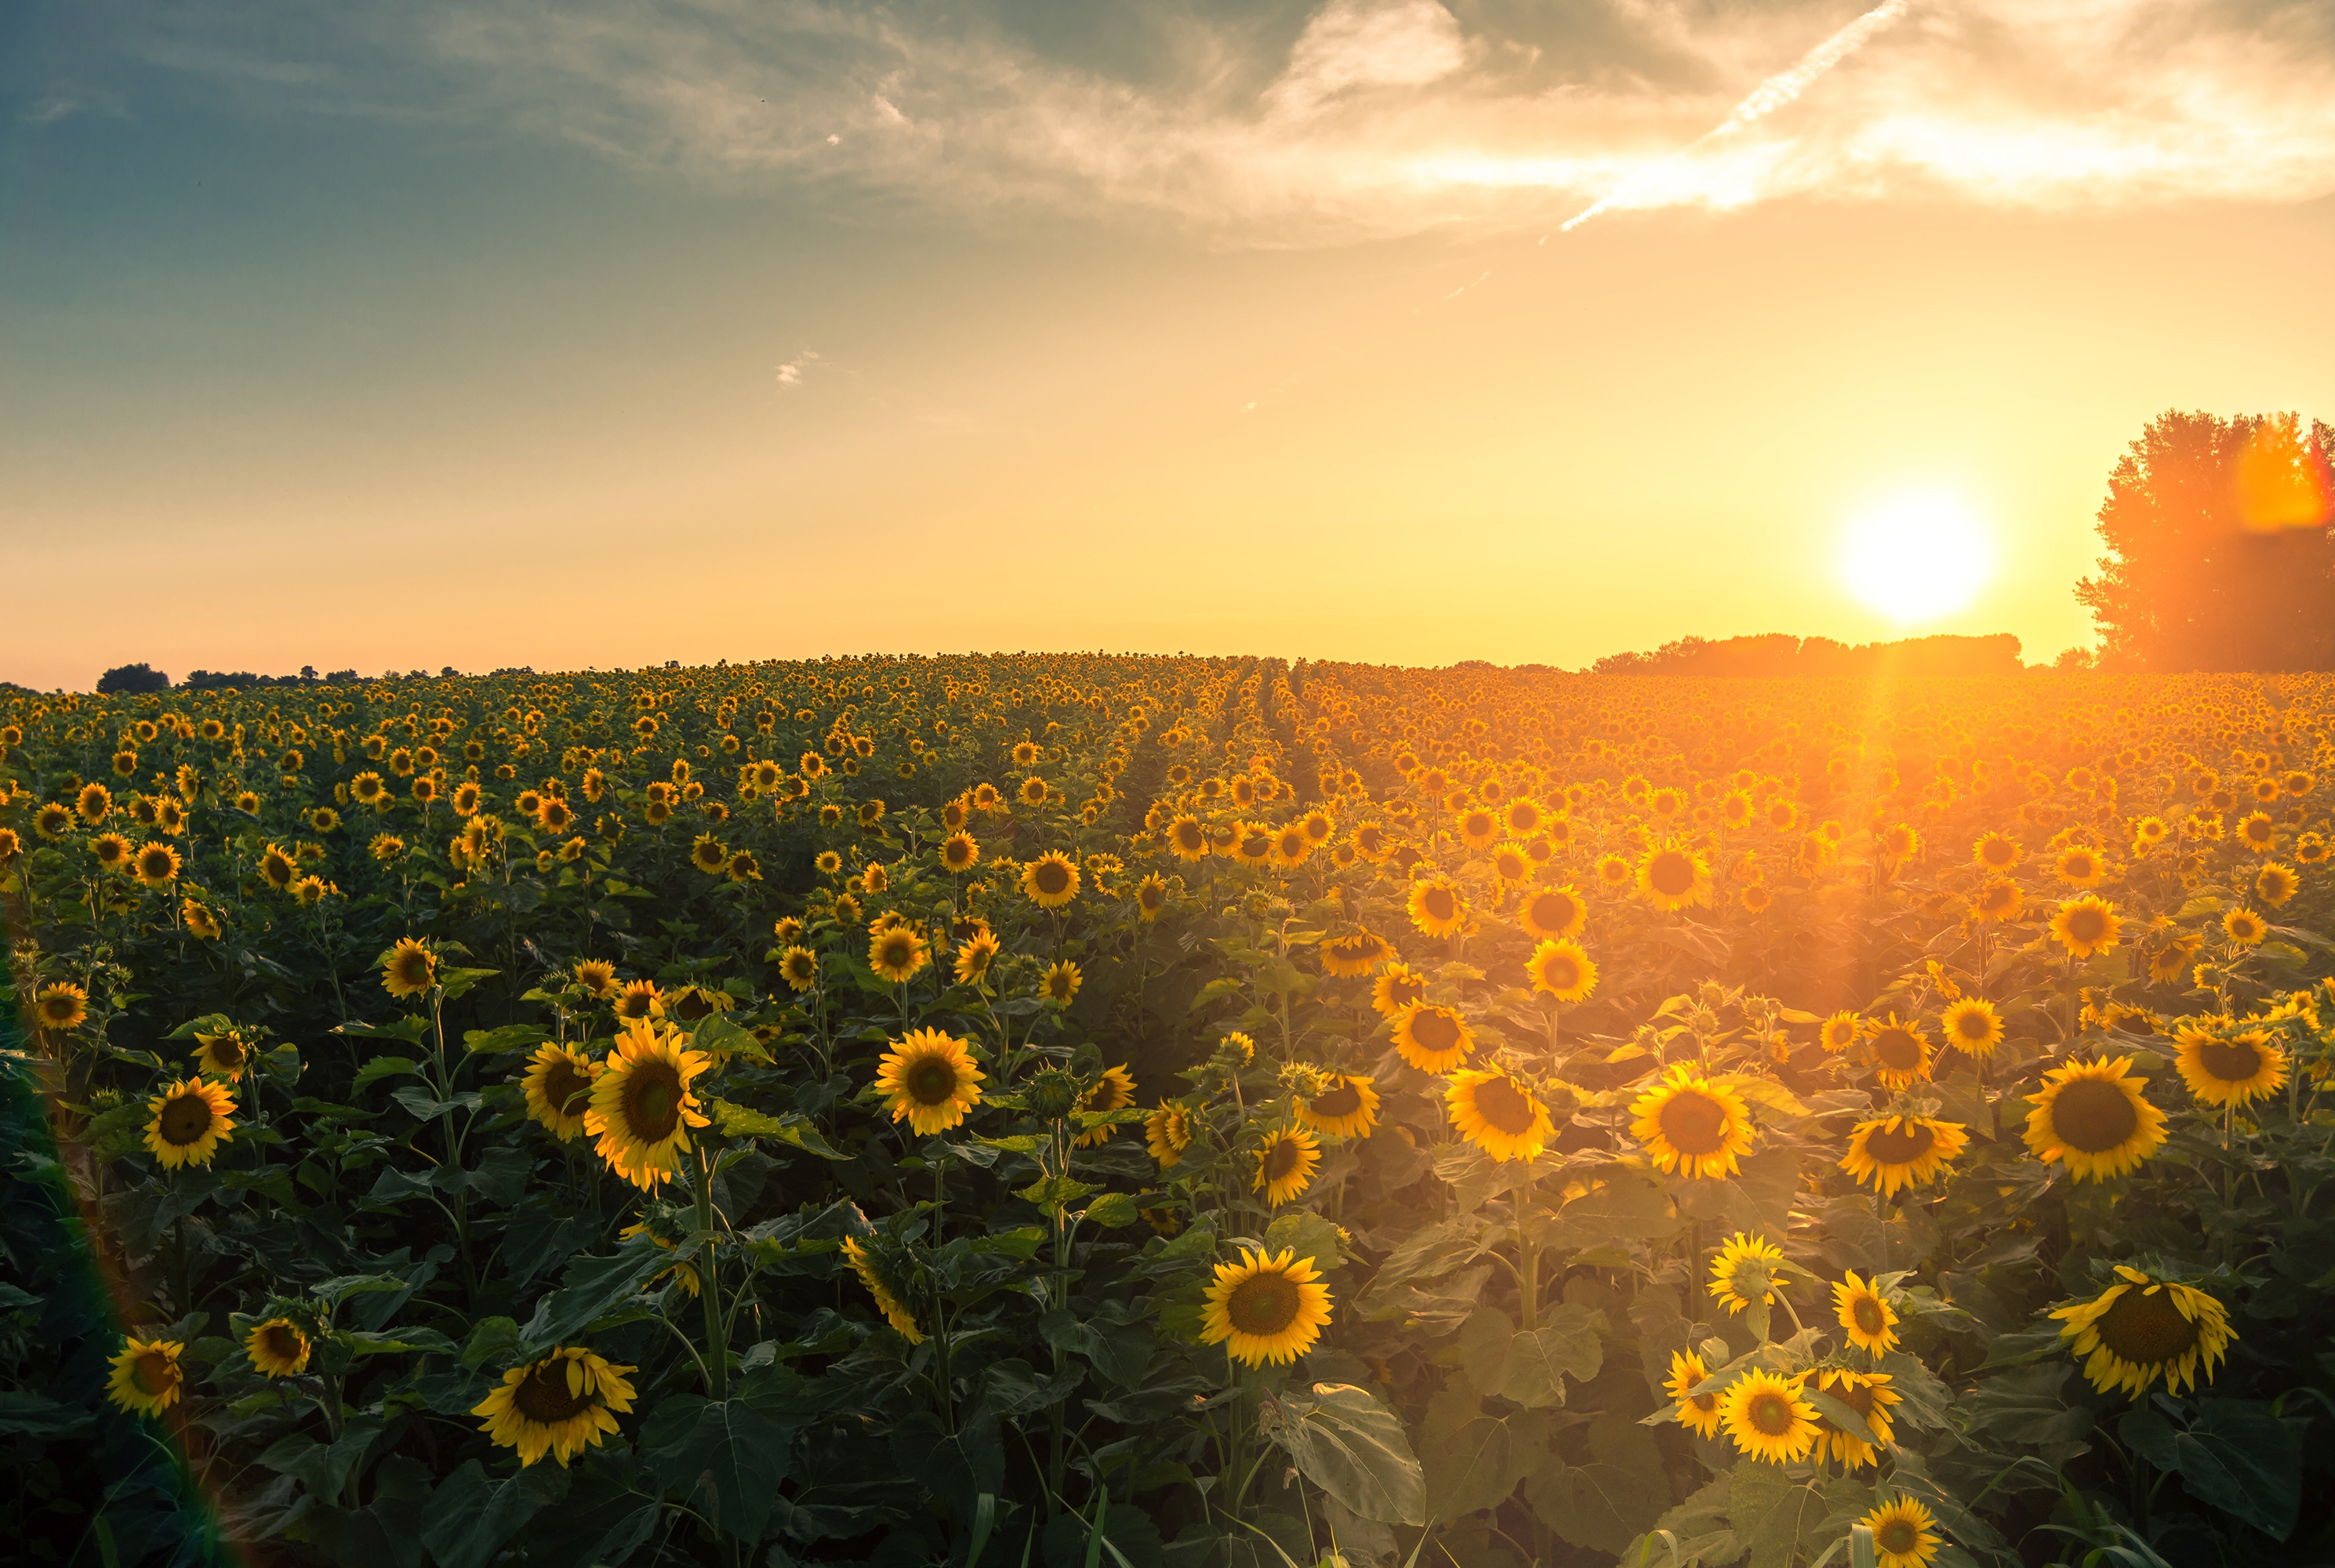 Sunflowers Are Blooming Earlier Than Ever—Here's Where You Can See Them in Their Full Glory